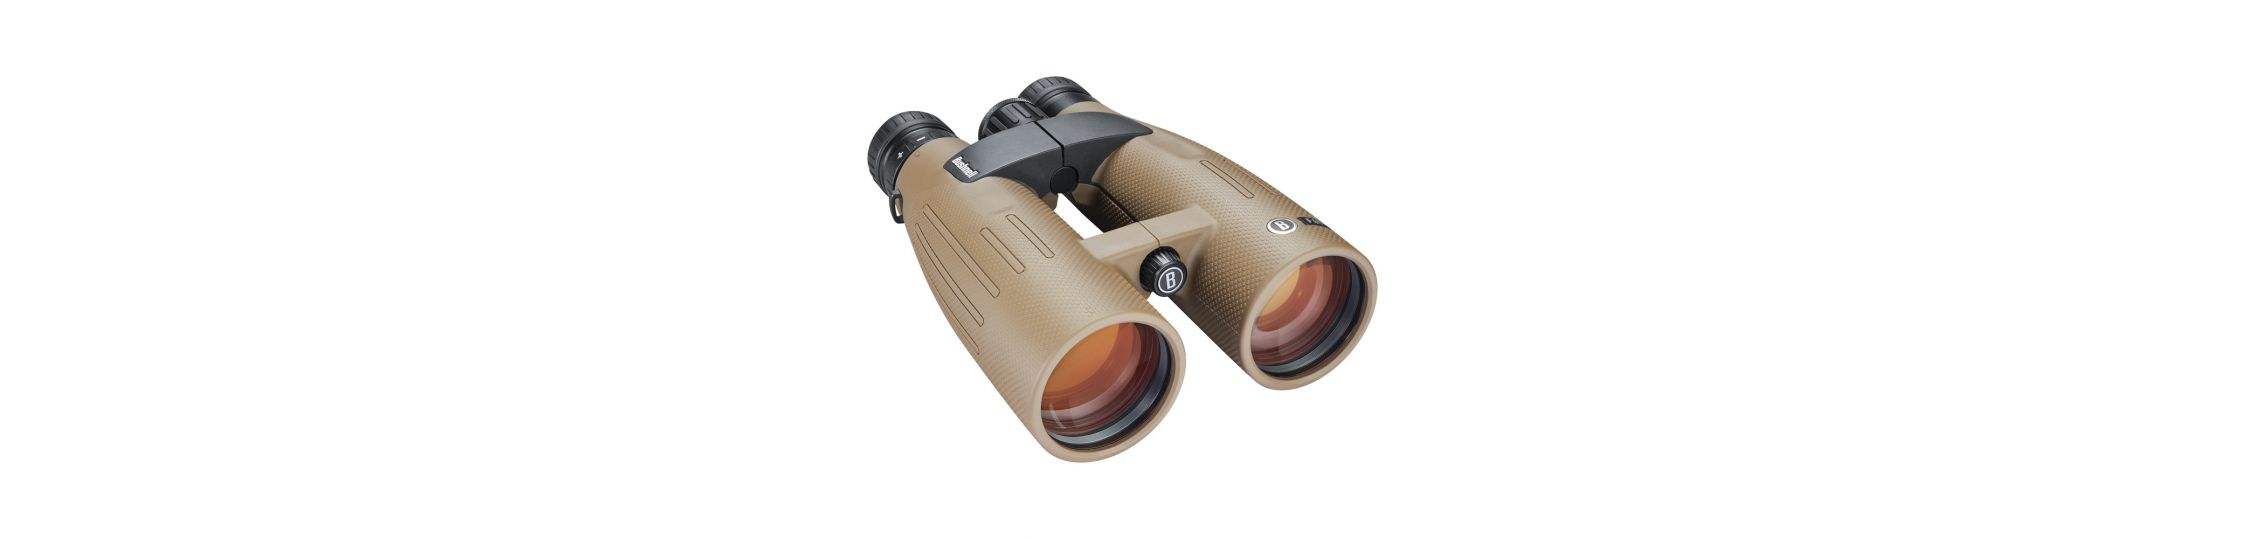 Bushnell Forge 15x56mm Binocular